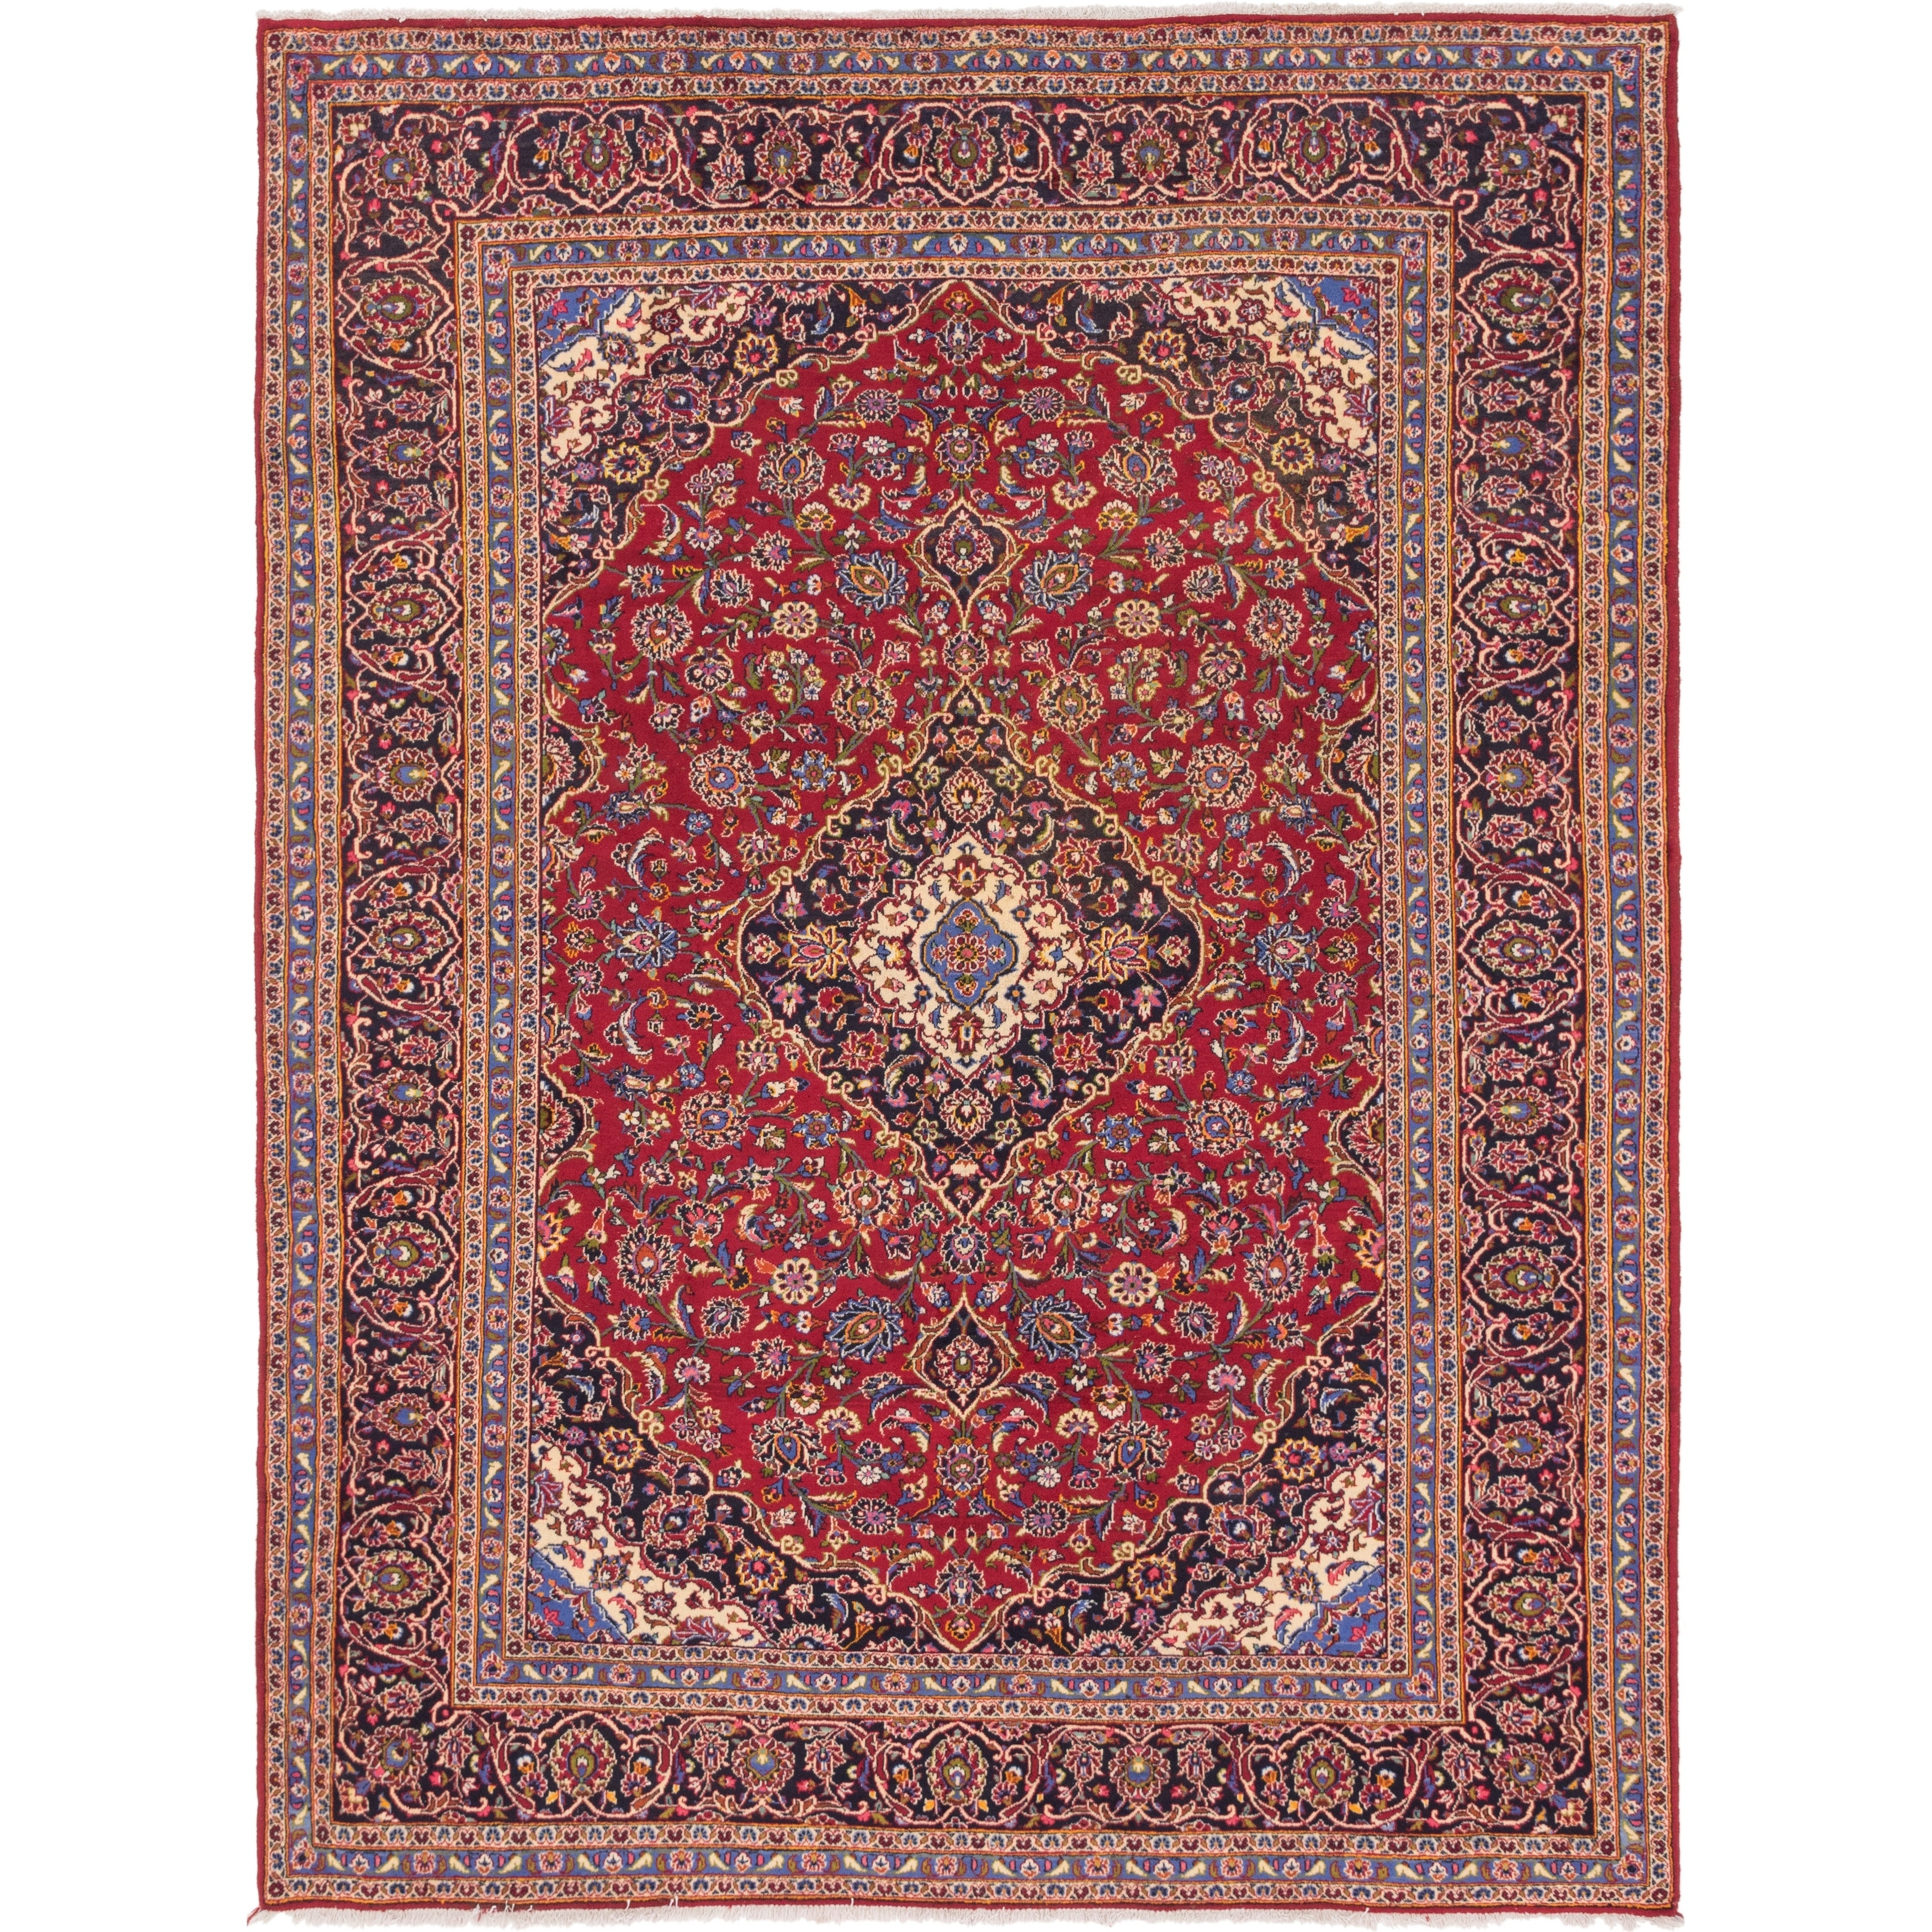 Hand Knotted Kashan Wool Area Rug - 9 8 x 13 (Red - 9 8 x 13)